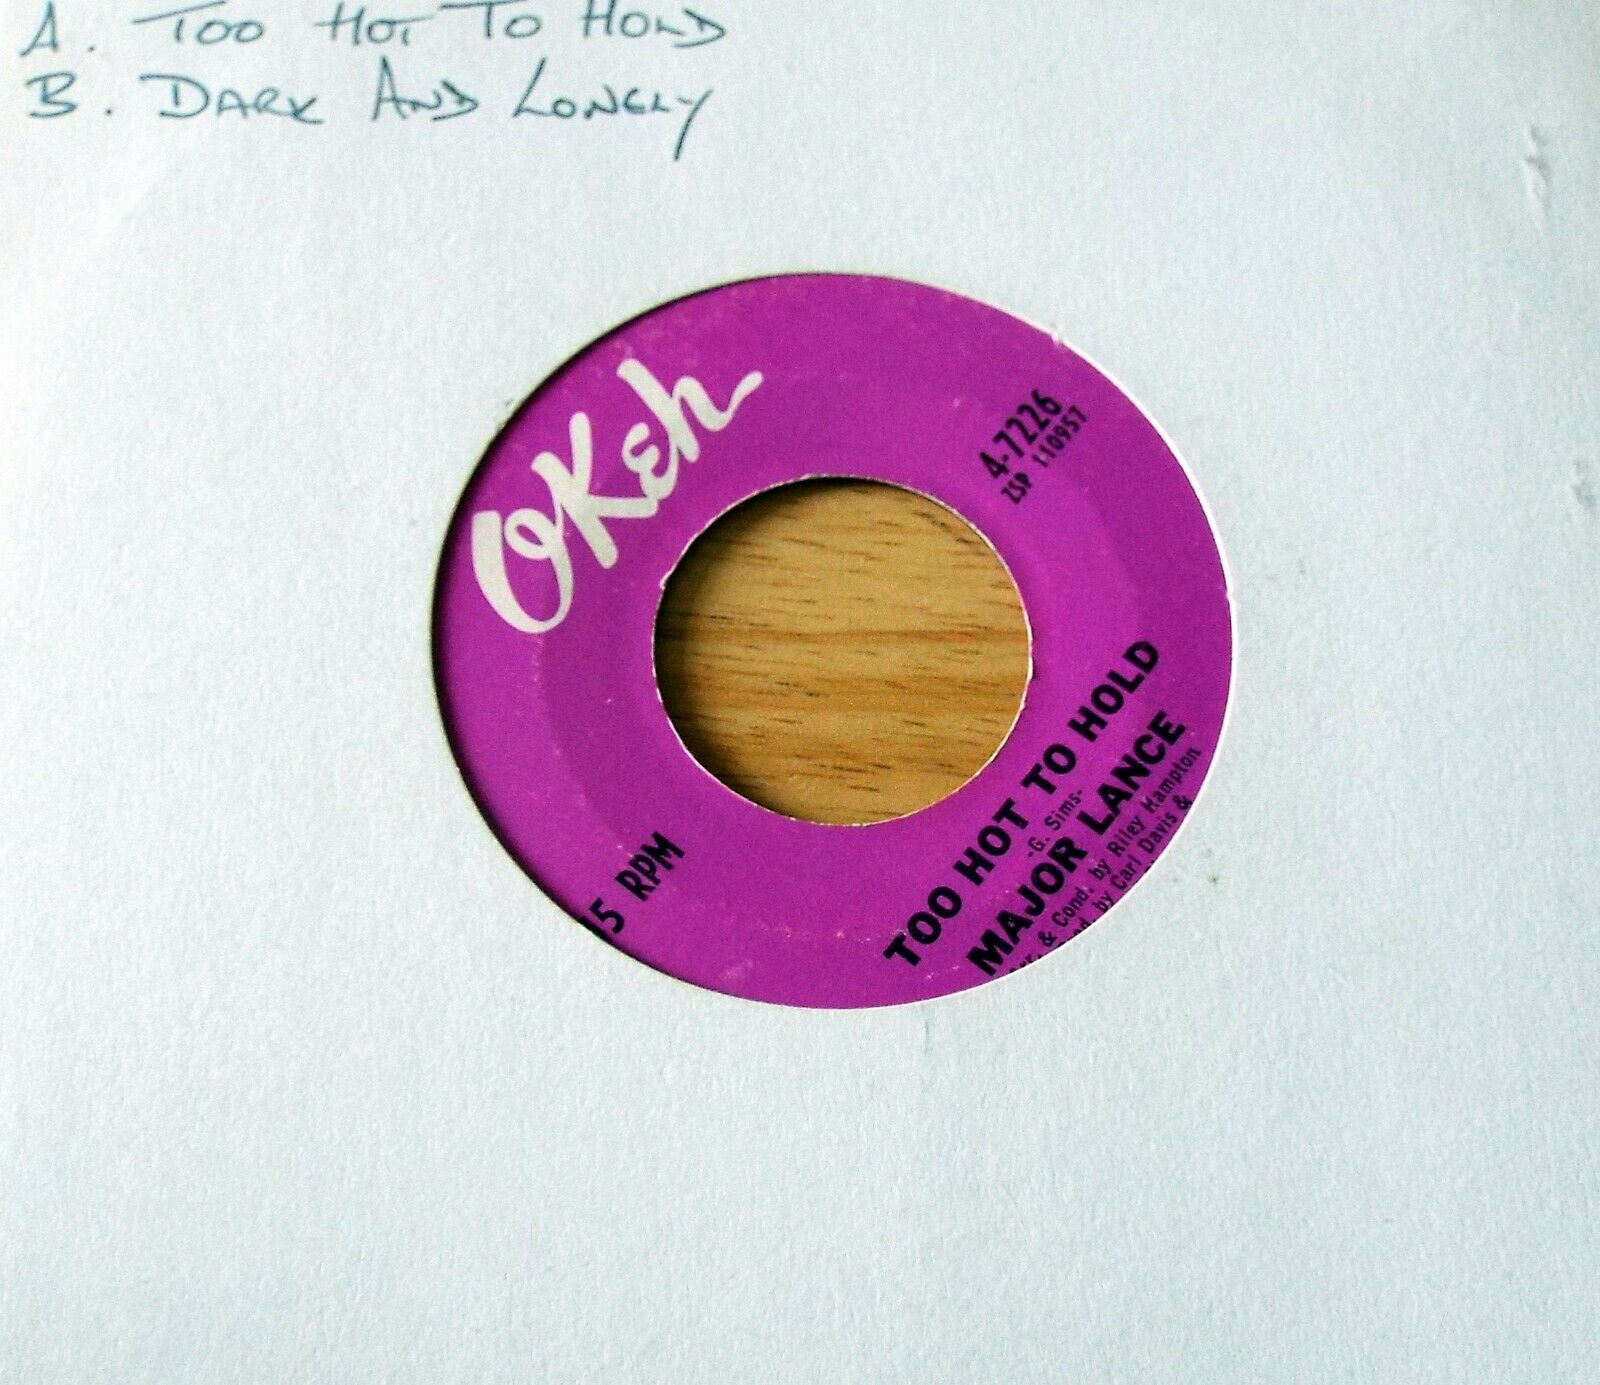 MAJOR LANCE Too Hot To Hold / Dark And Lonely OKEH 4-7226